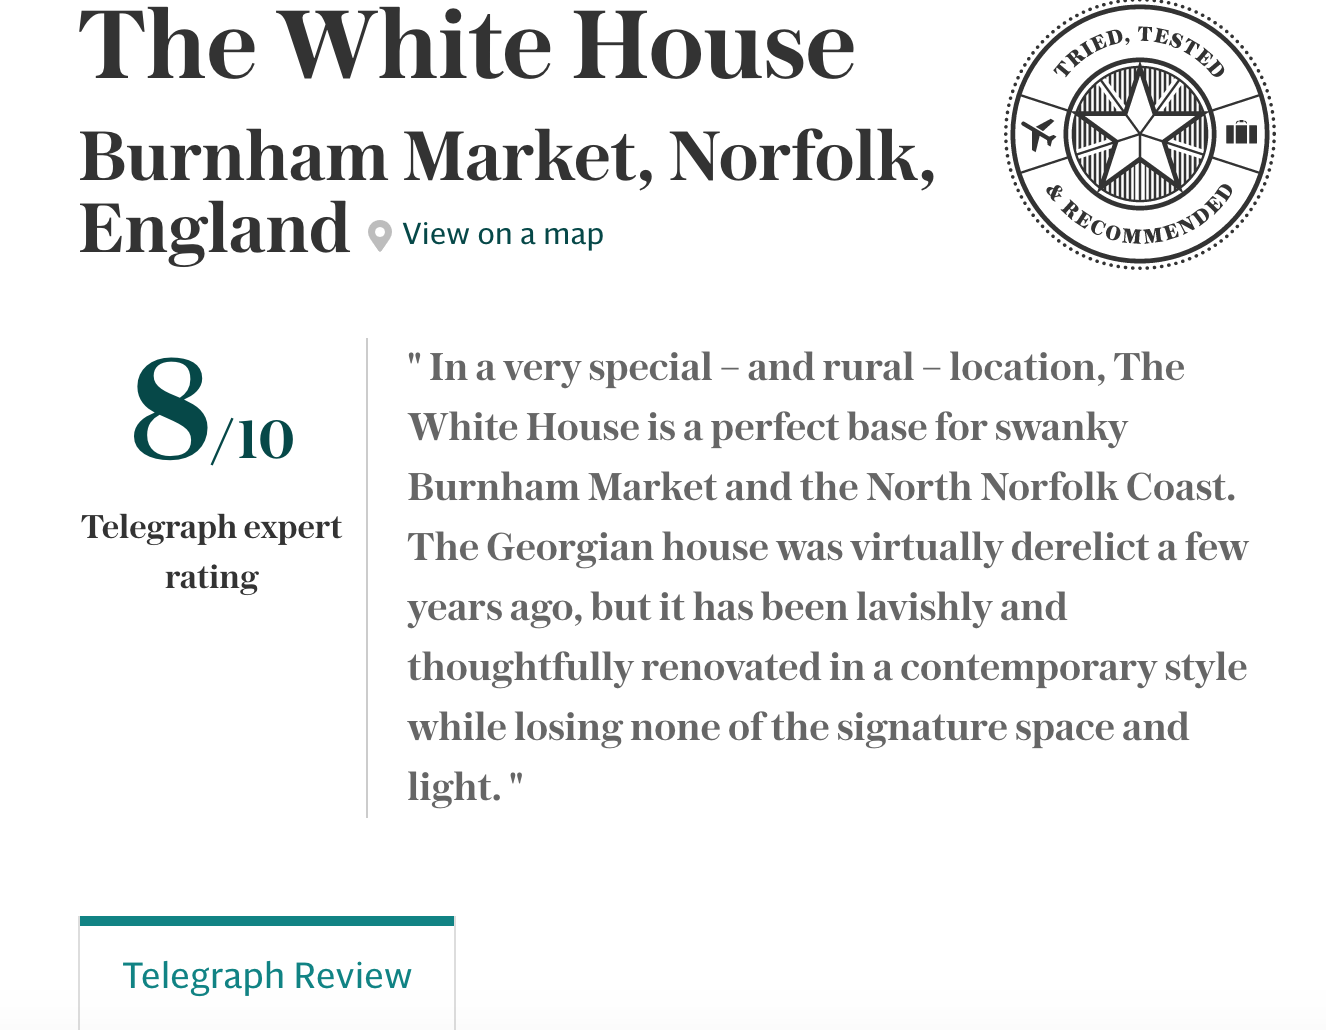 please Click HERE to link to the Daily telegraph reveiw